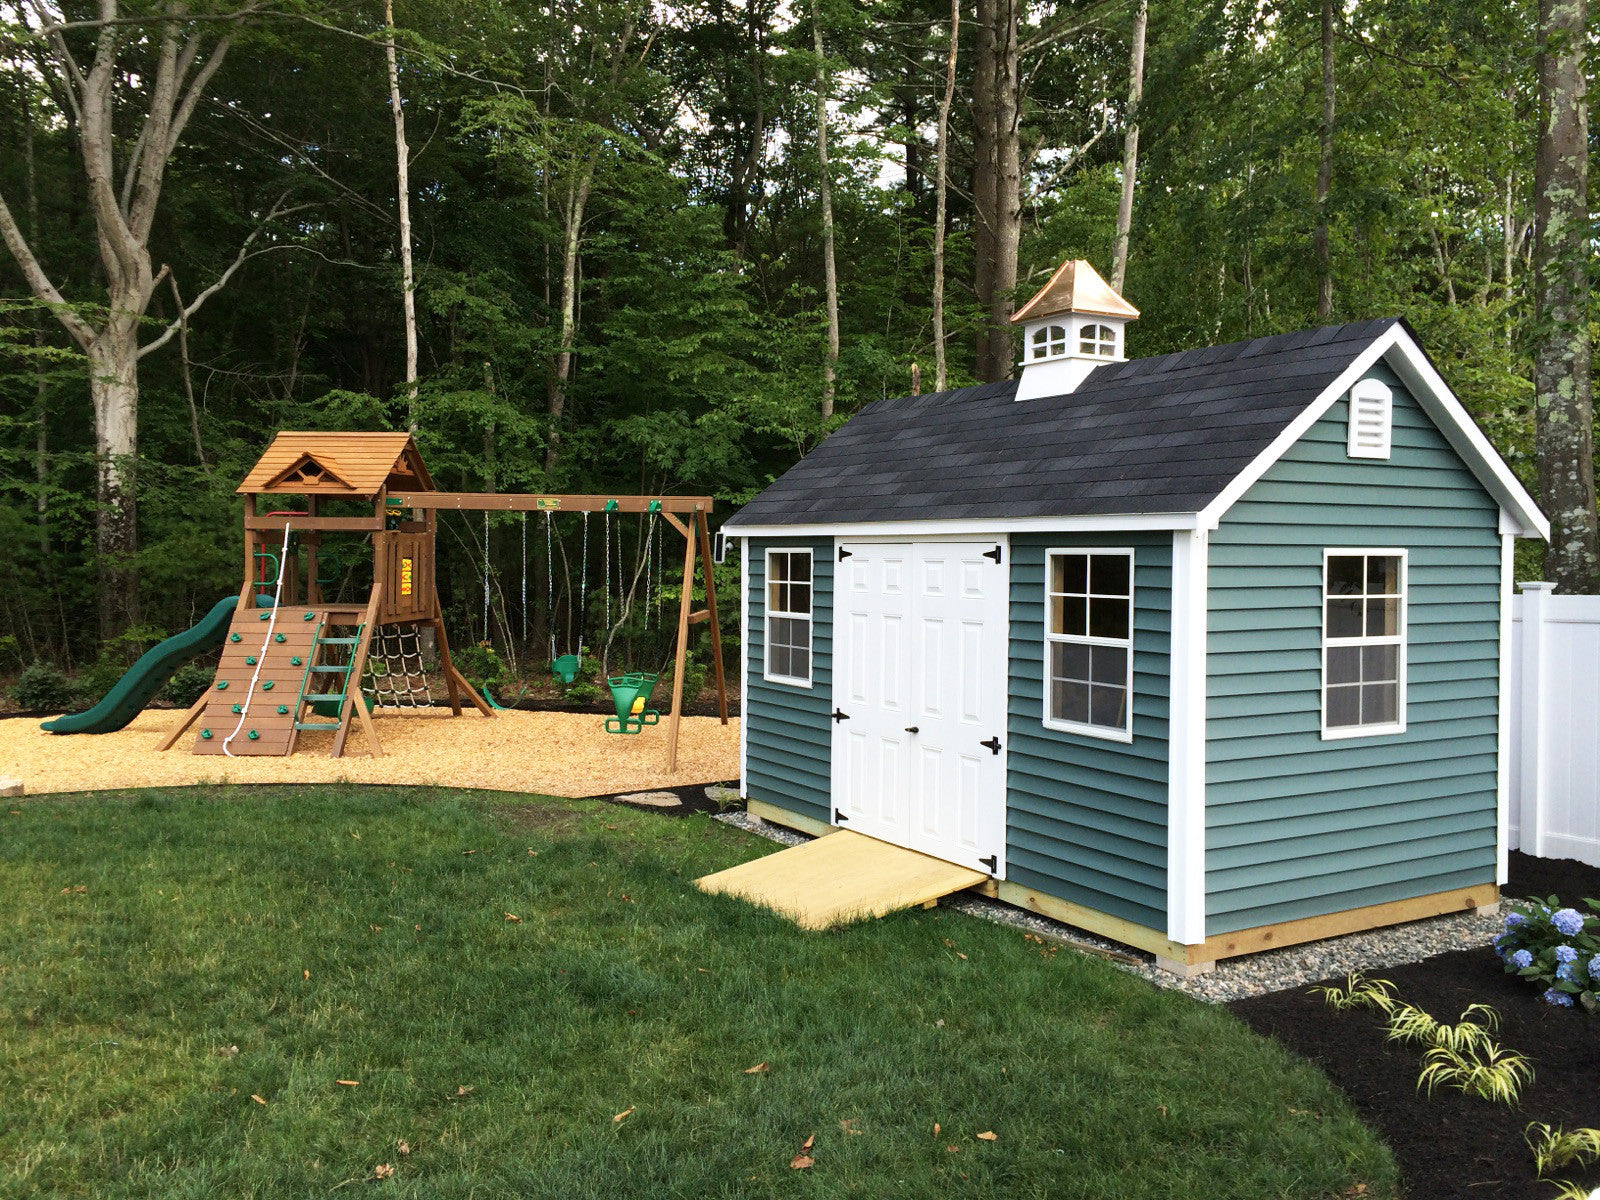 see our sheds design your own garden sheds nh - Garden Sheds Nh